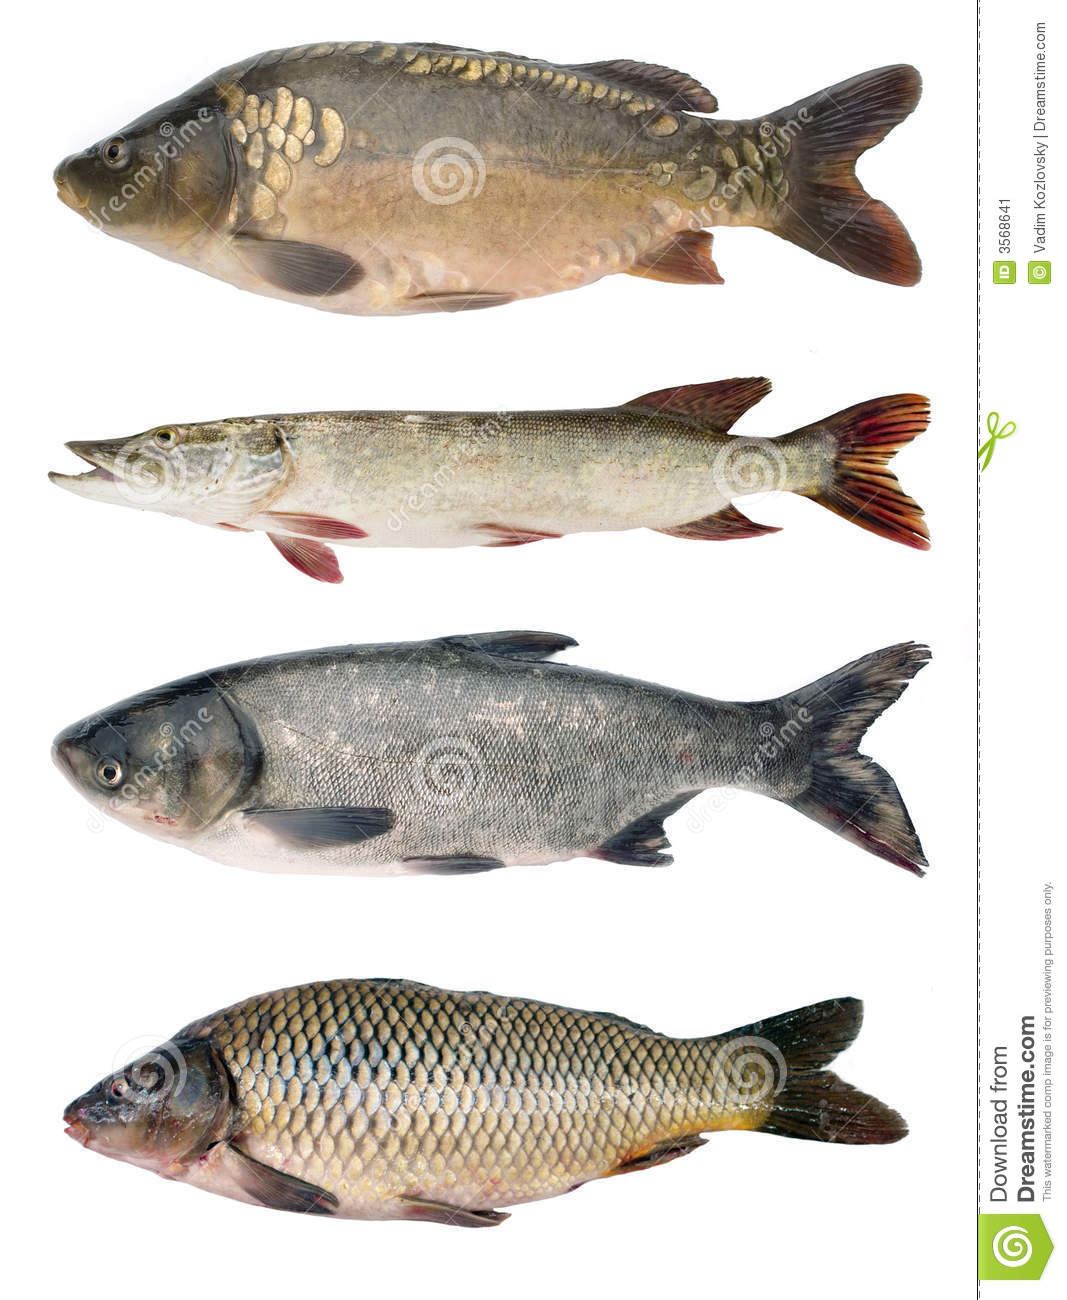 Fish collection stock image image 3568641 for H and m fish count